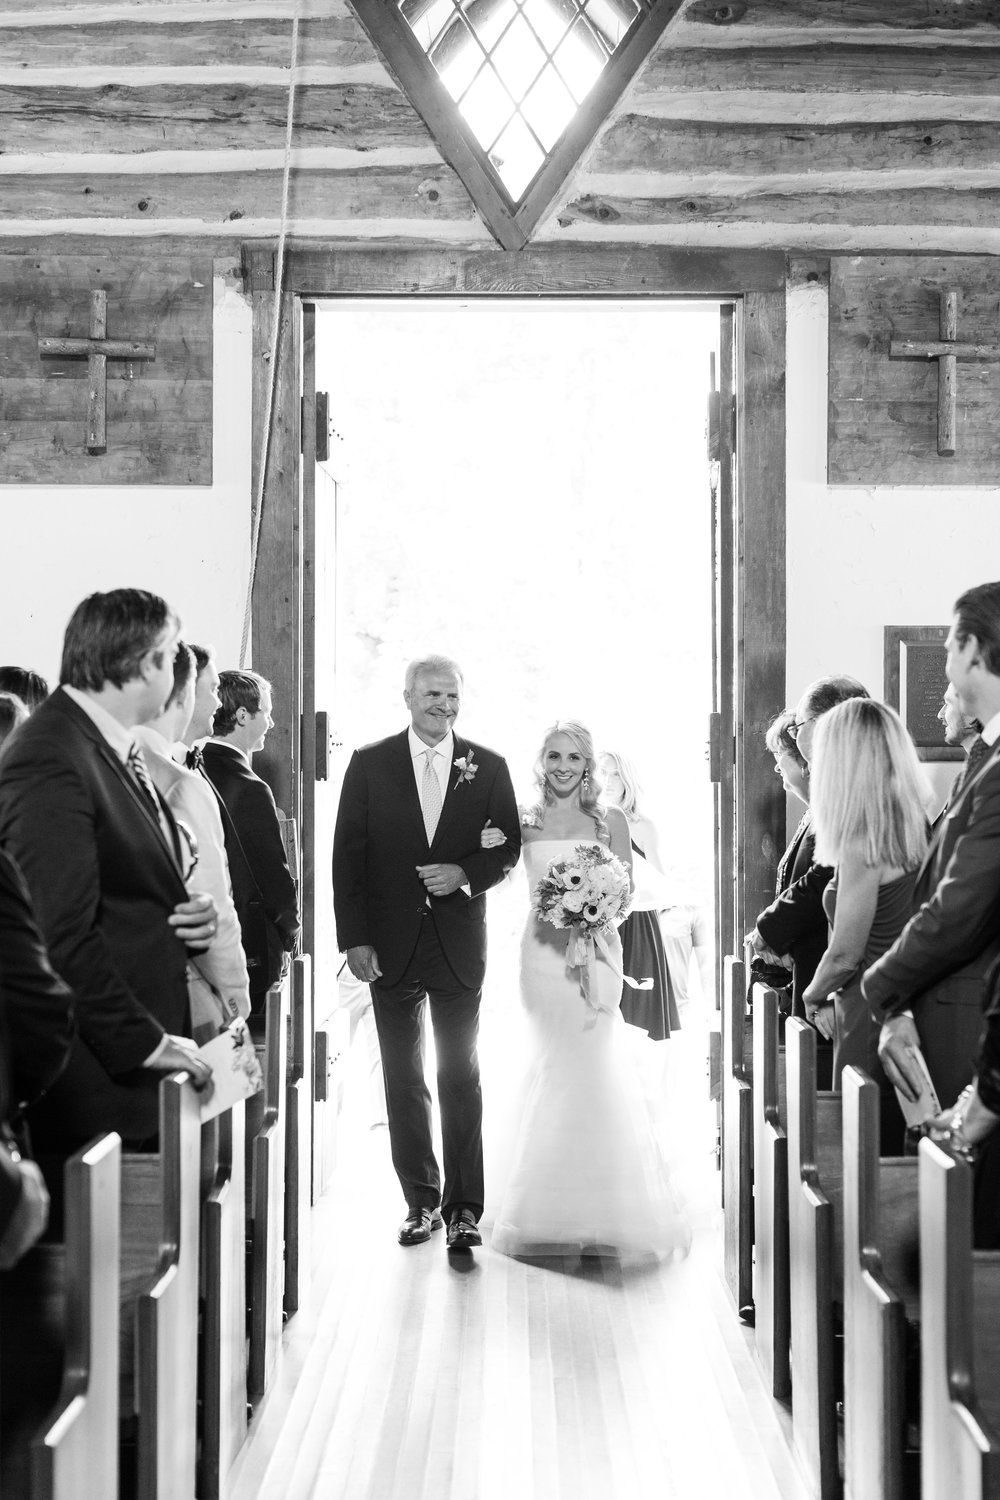 Coffman+Wedding+Ceremony-59.jpg